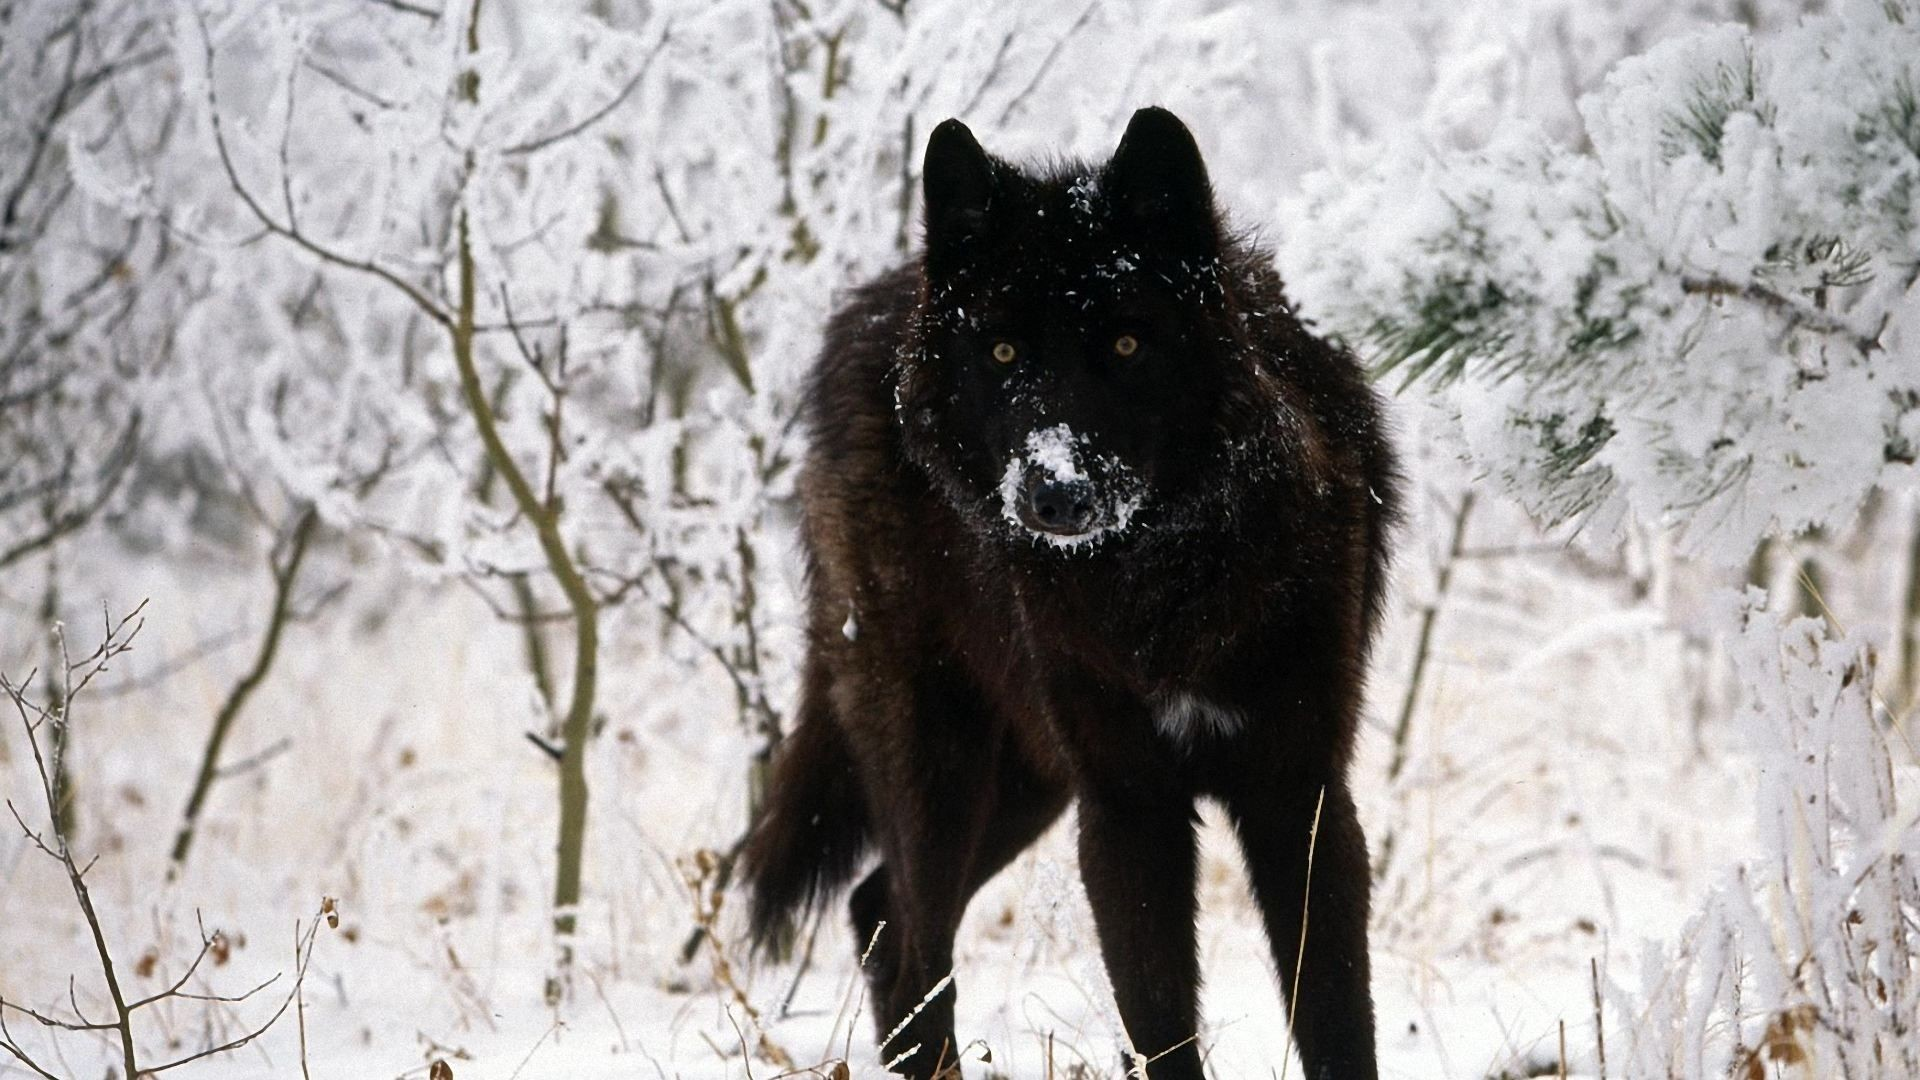 1920x1080 Black wolf wallpapers hd cool phone backgrounds amazing best hd .